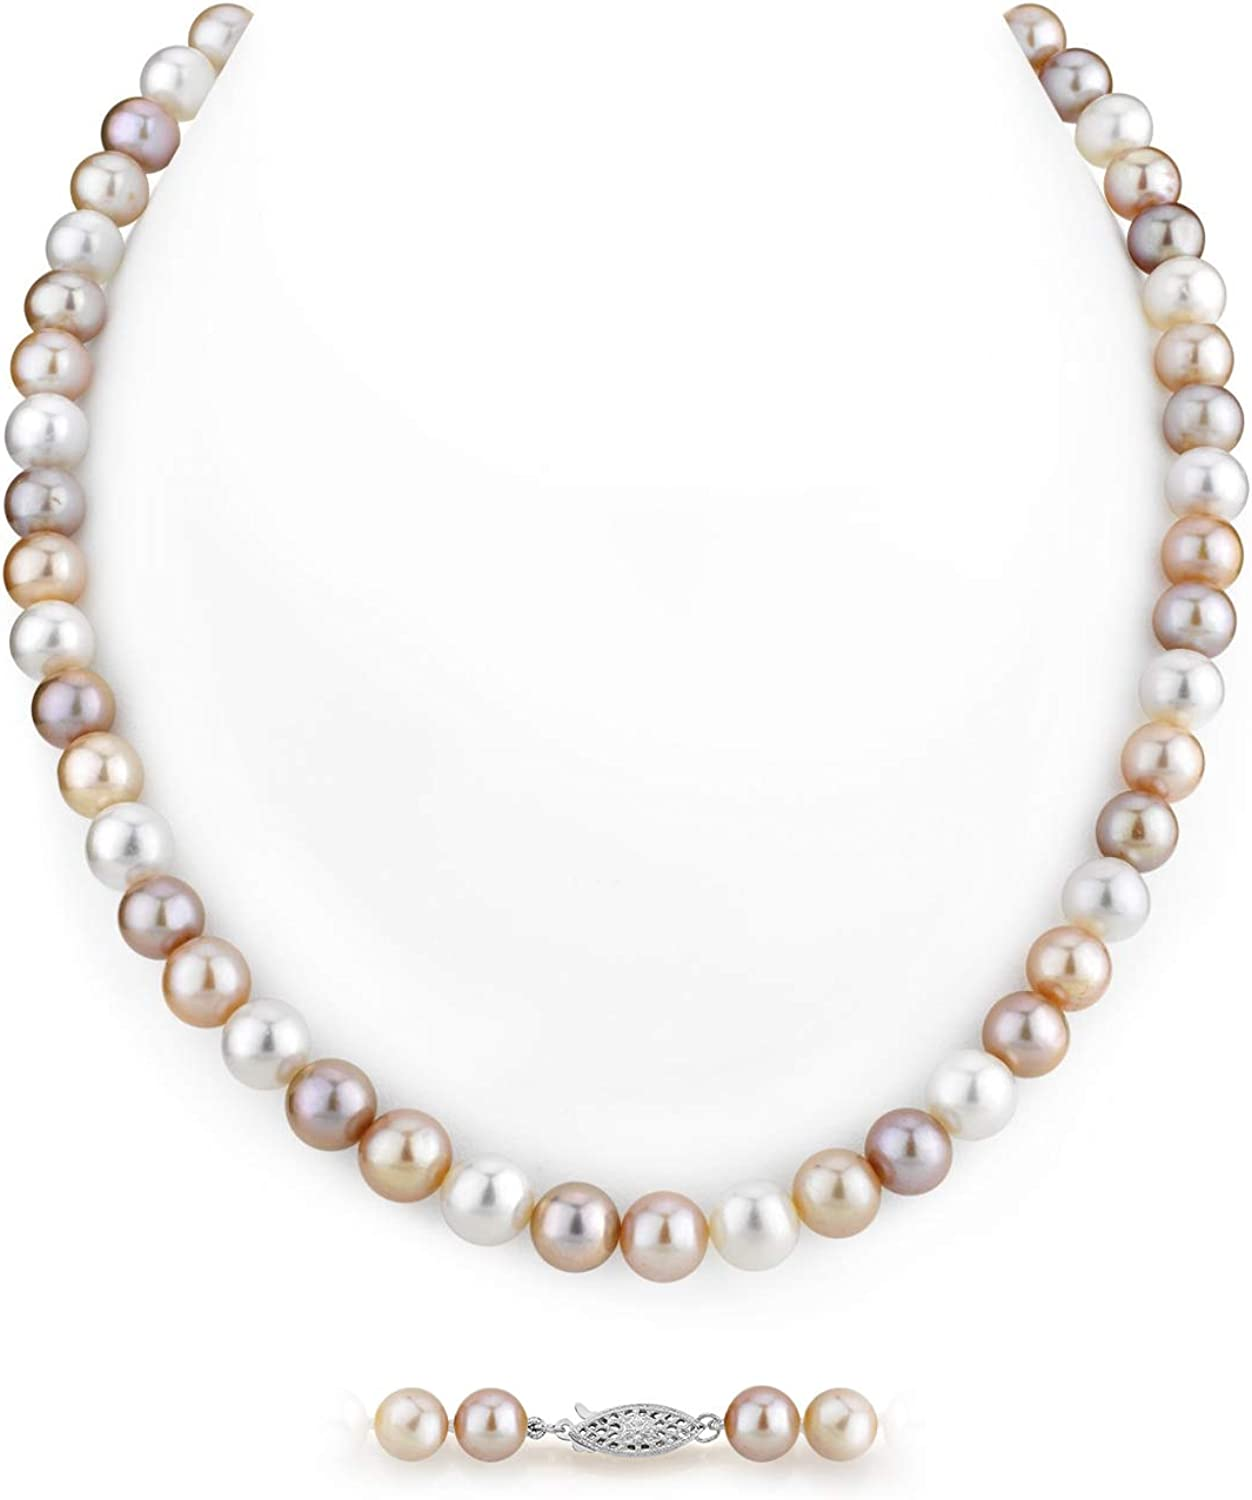 Multicolor Freshwater Cultured Pearl Necklace for Women in AAA Quality - THE PEARL SOURCE